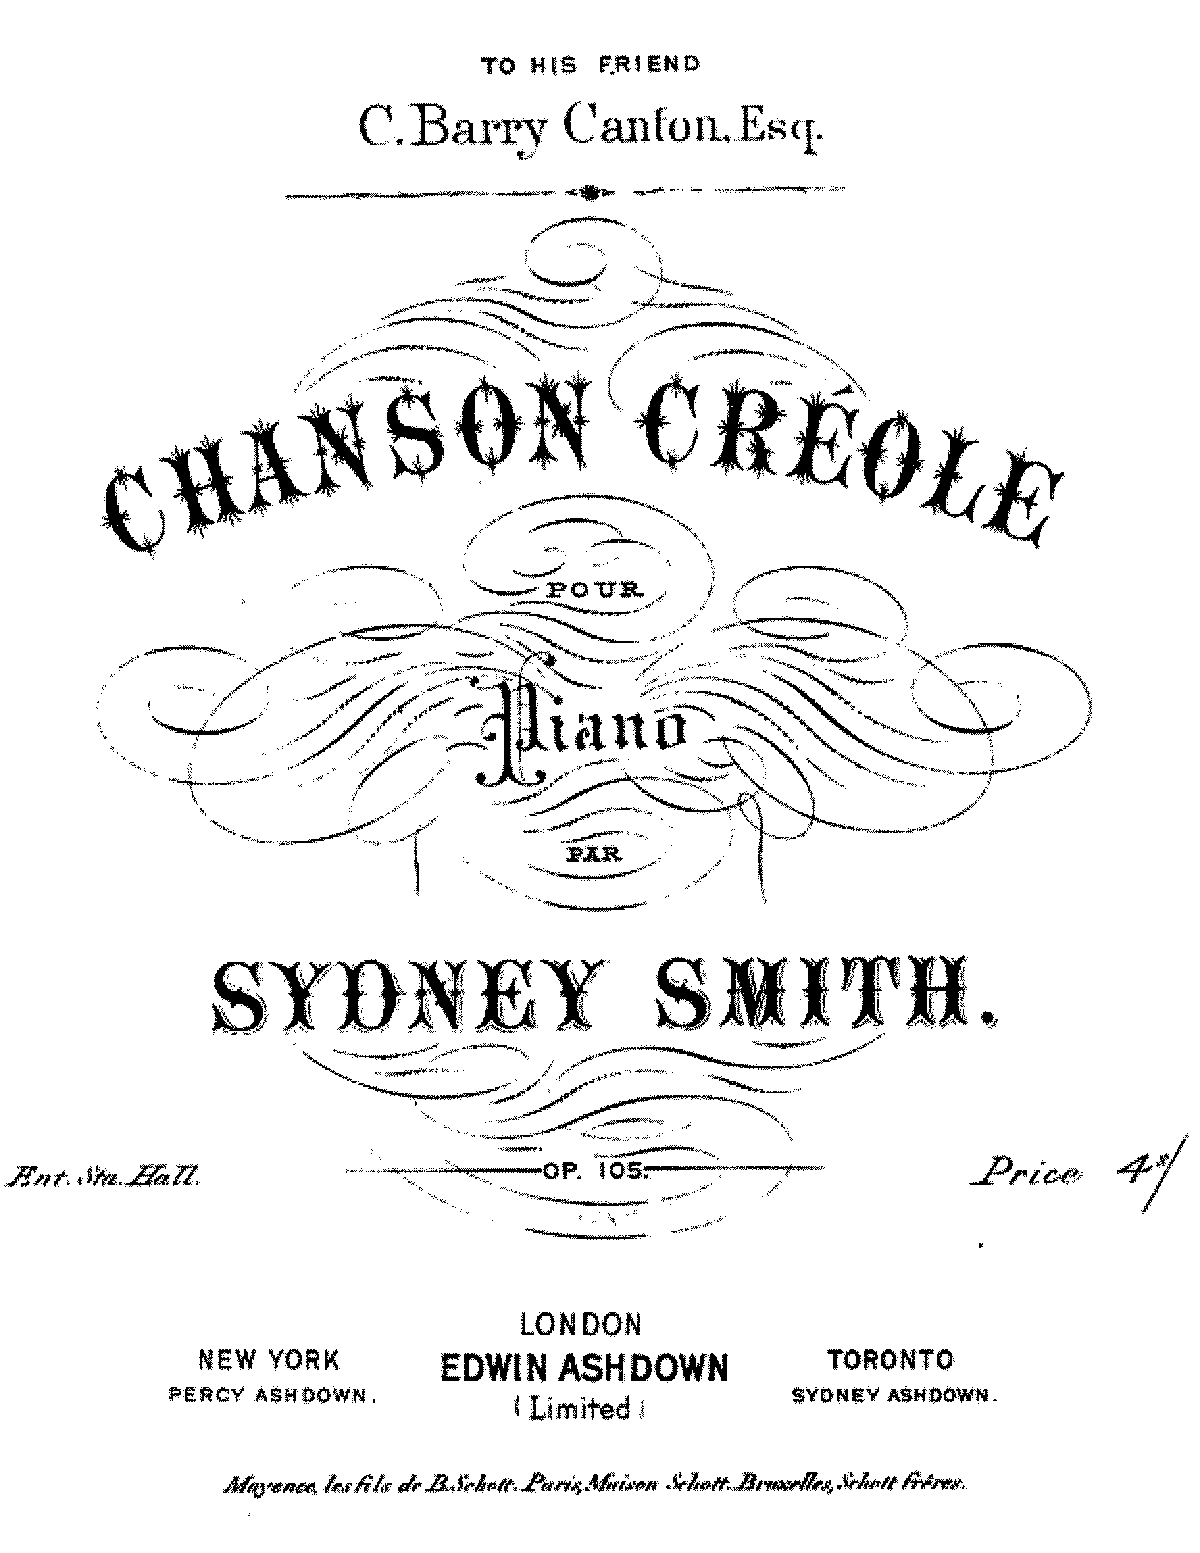 Smith, Sydney op105 chanson creole.pdf